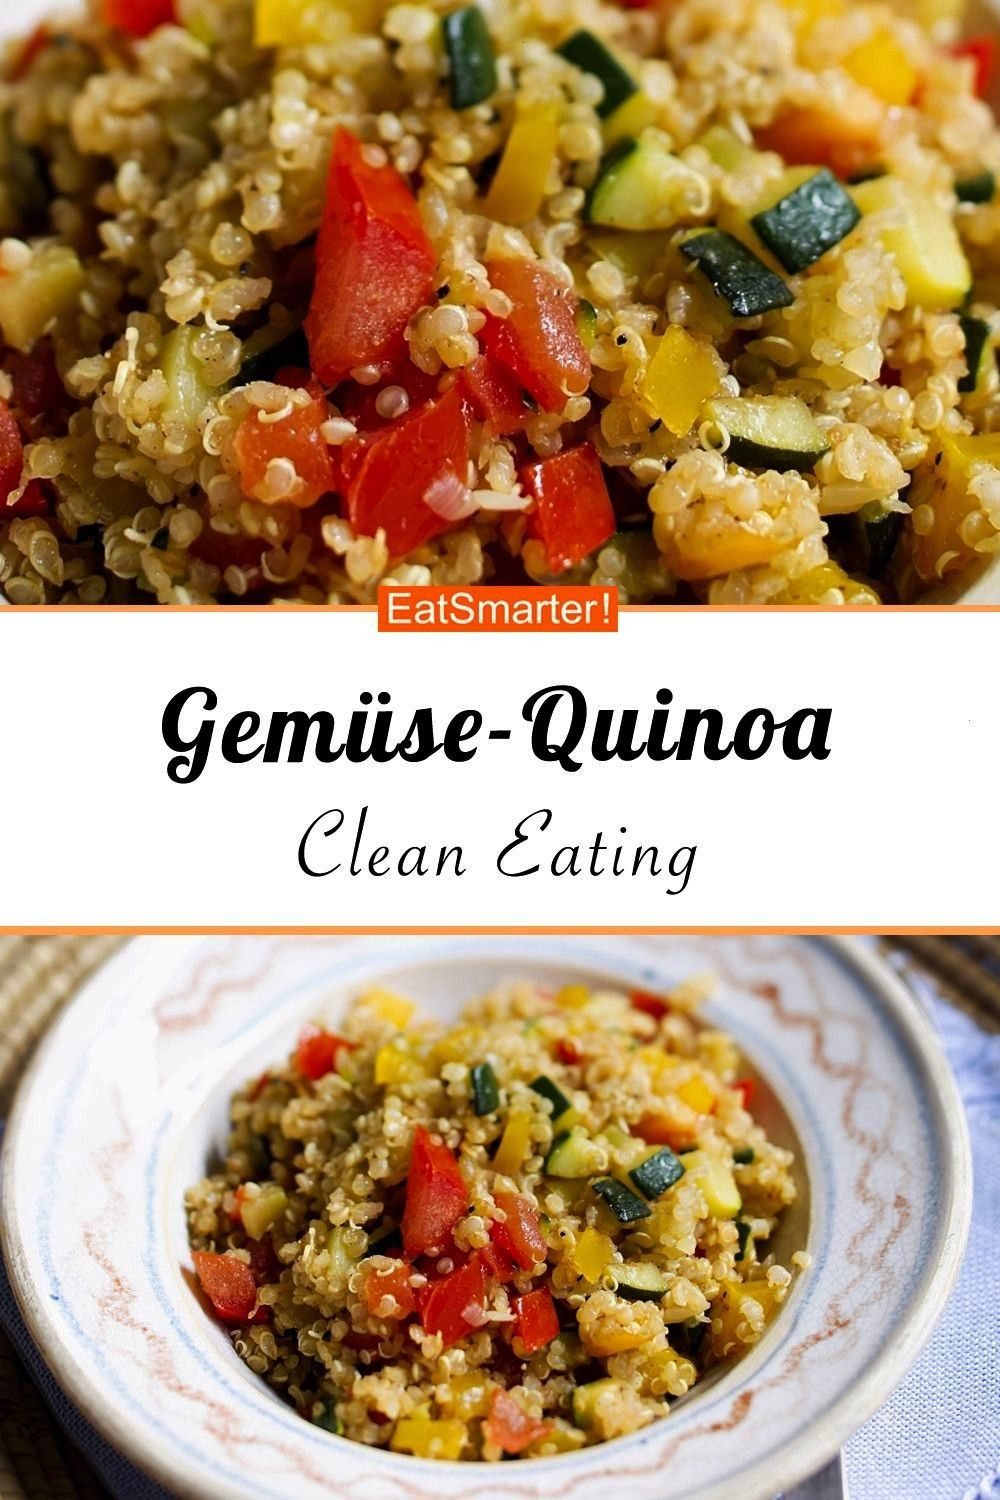 quinoa -  Vegetable quinoa – smarter – calories: 254 kcal – time: 30 min. |   -Vegetable quin